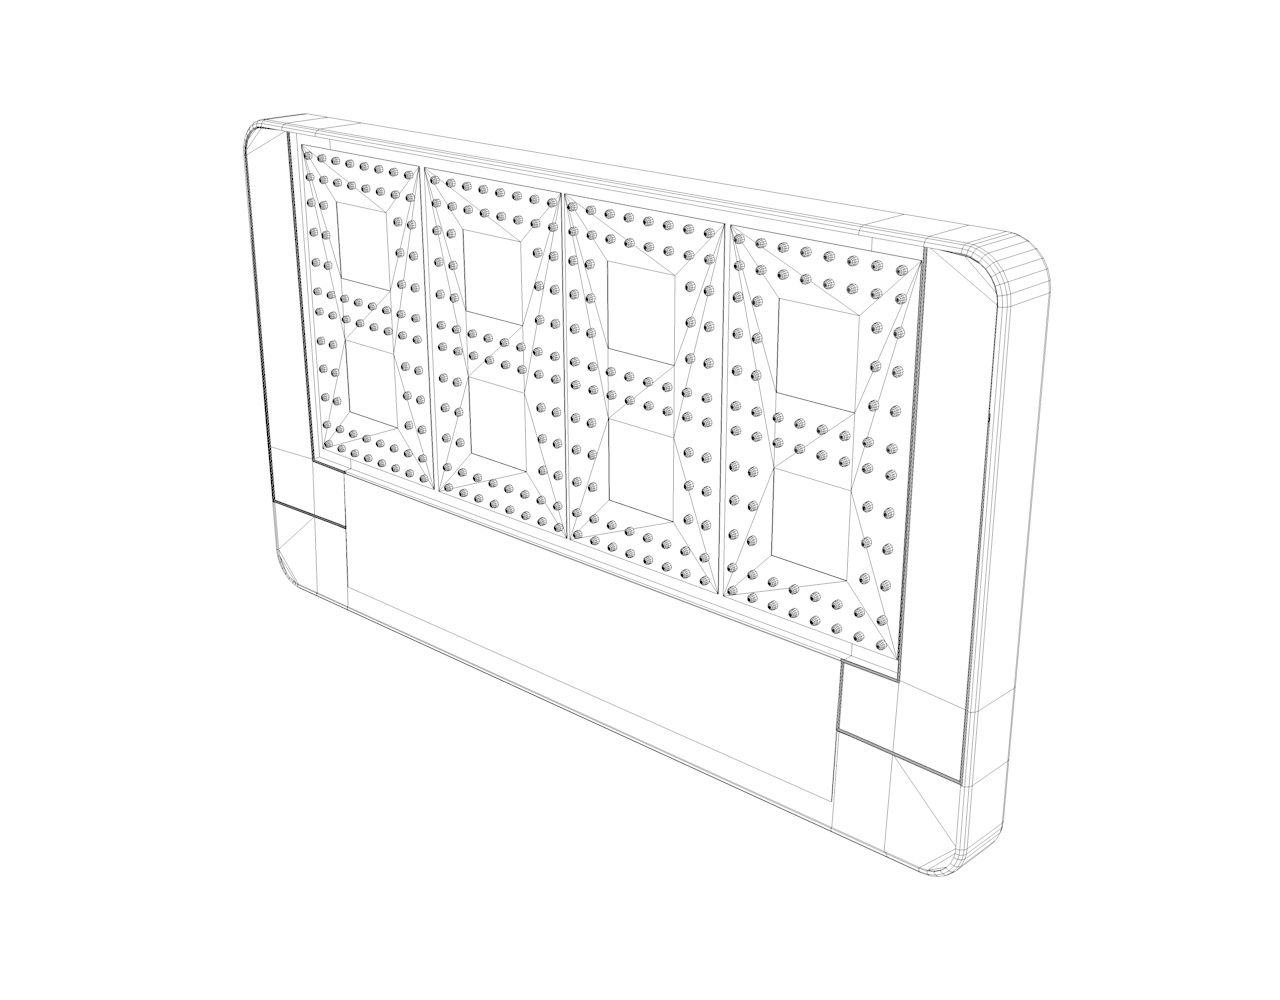 Substitution Board 3d model time-remaining soccer match LED-light